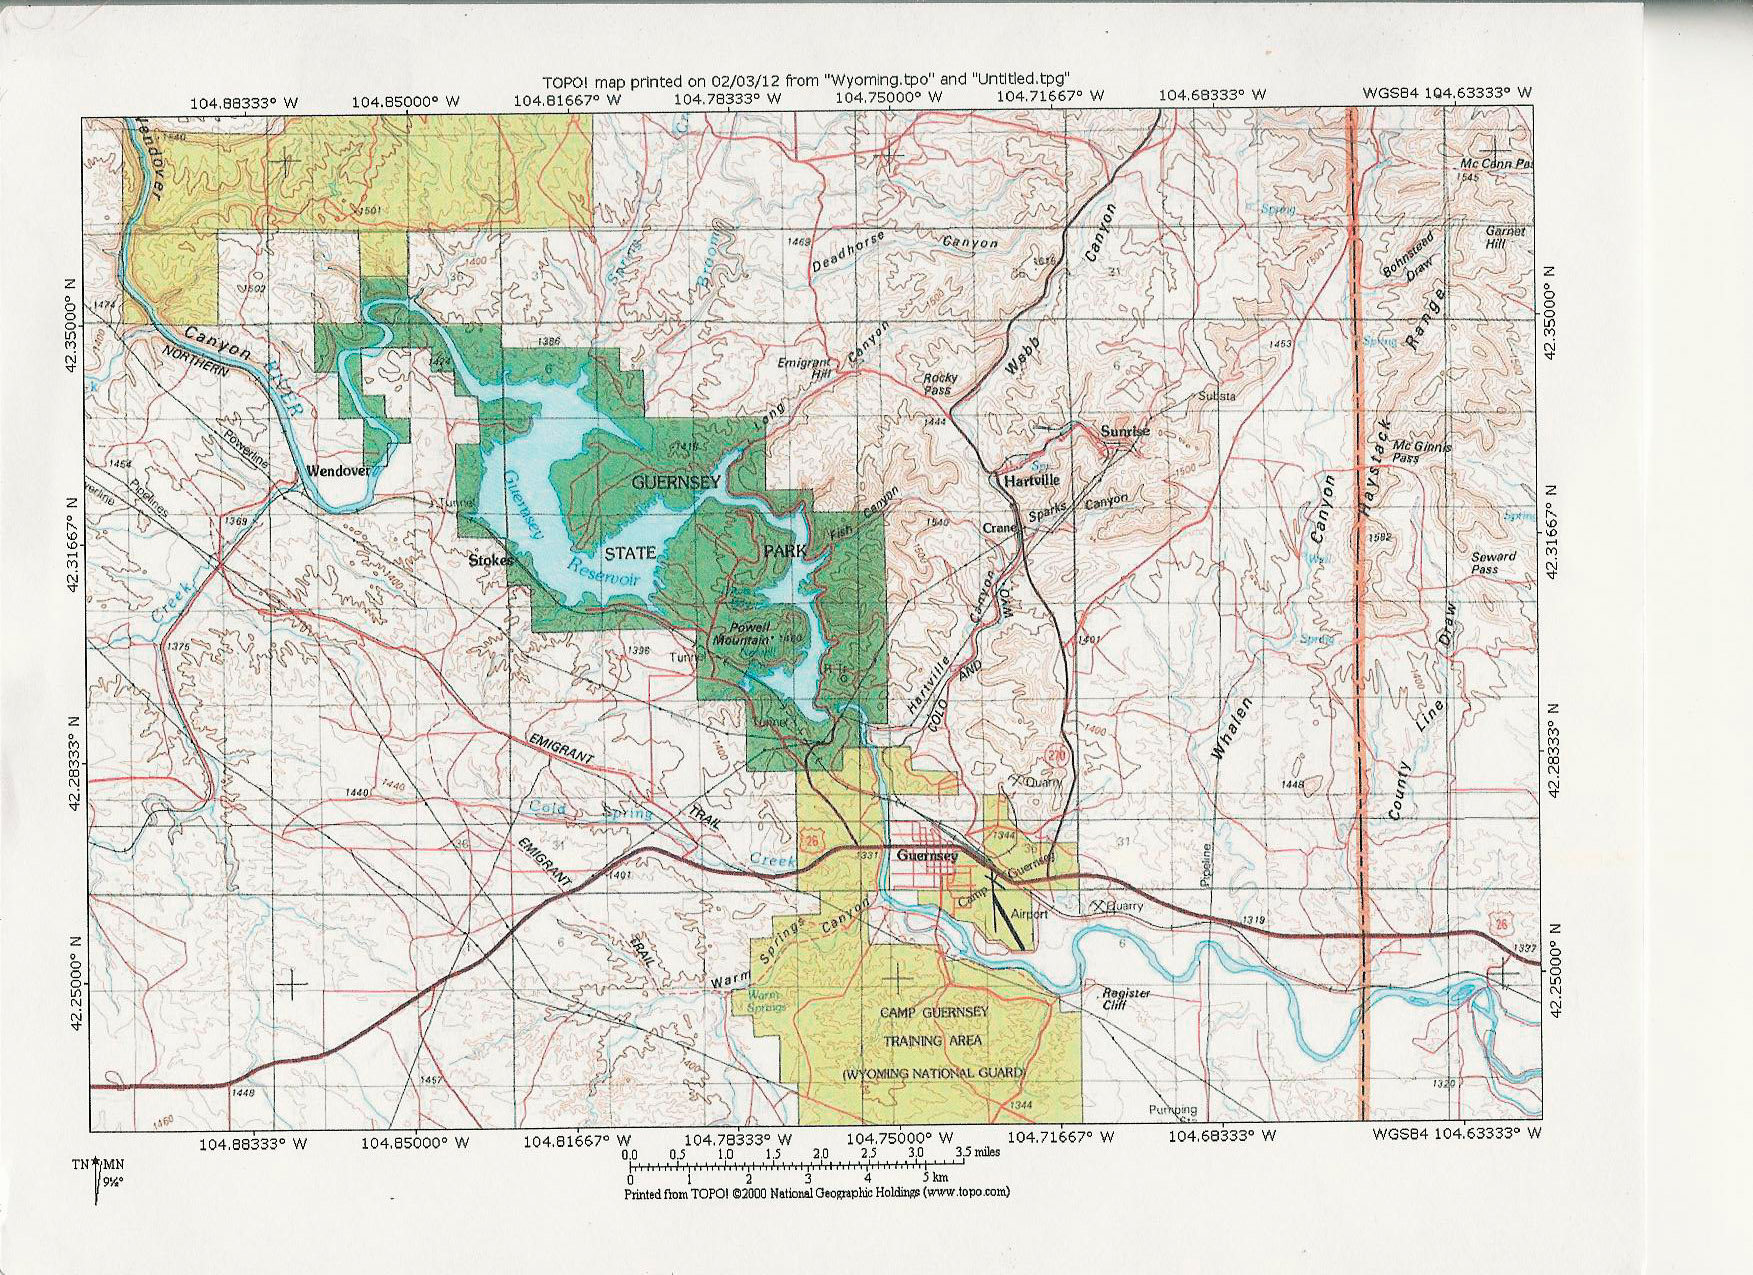 Guernsey Wyoming Map MAP 2: Guernsey State Park